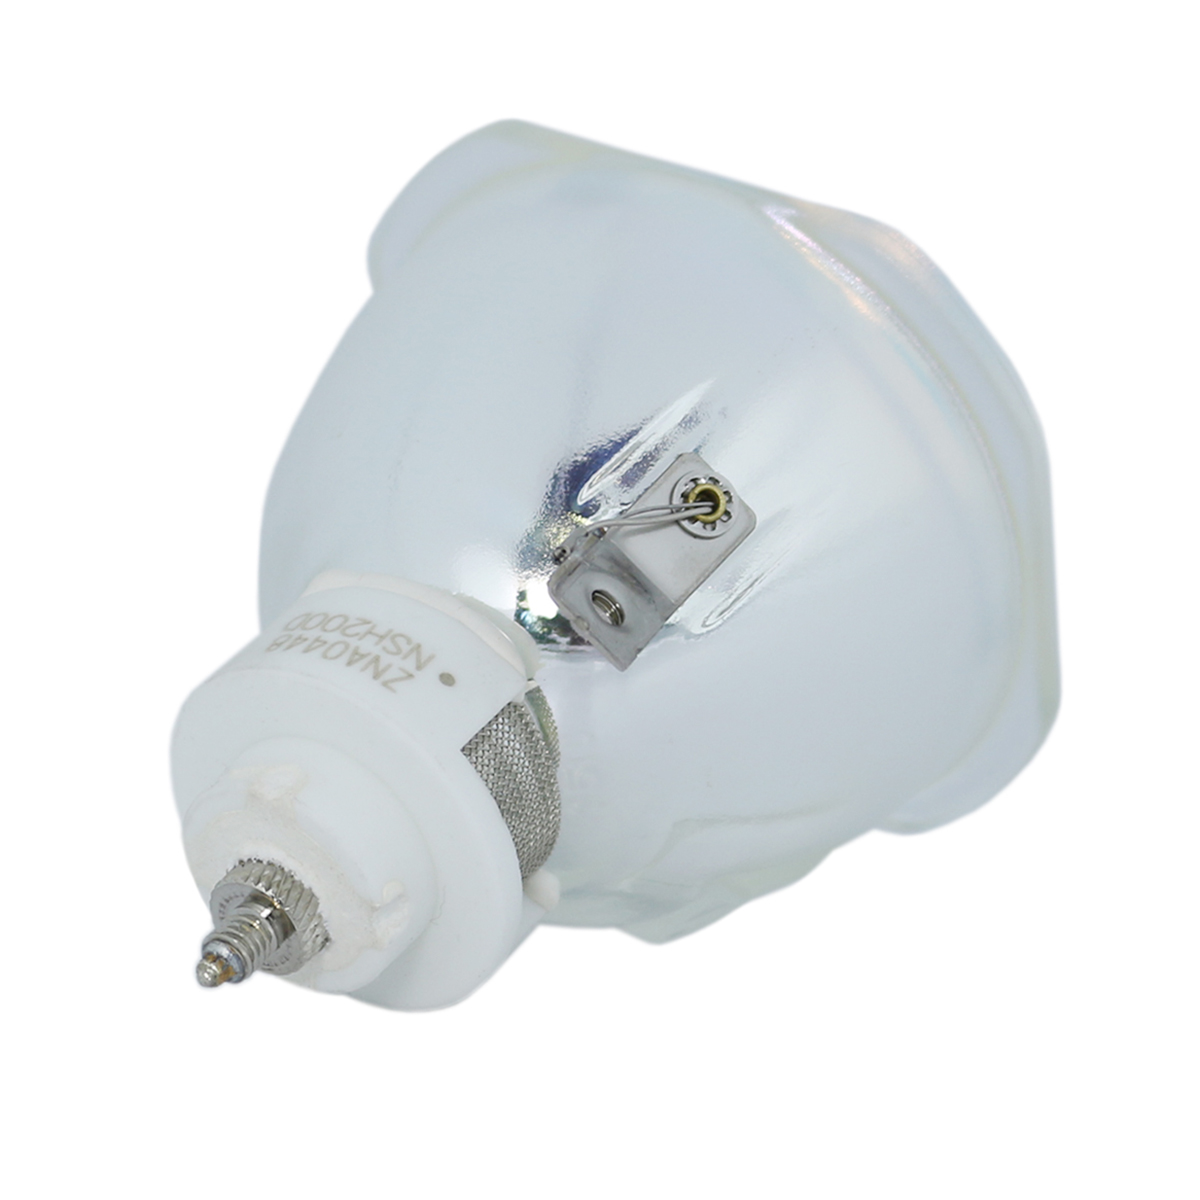 Lutema Platinum Bulb for Vidikron Vision Model 20ET Projector (Lamp Only) - image 3 of 5